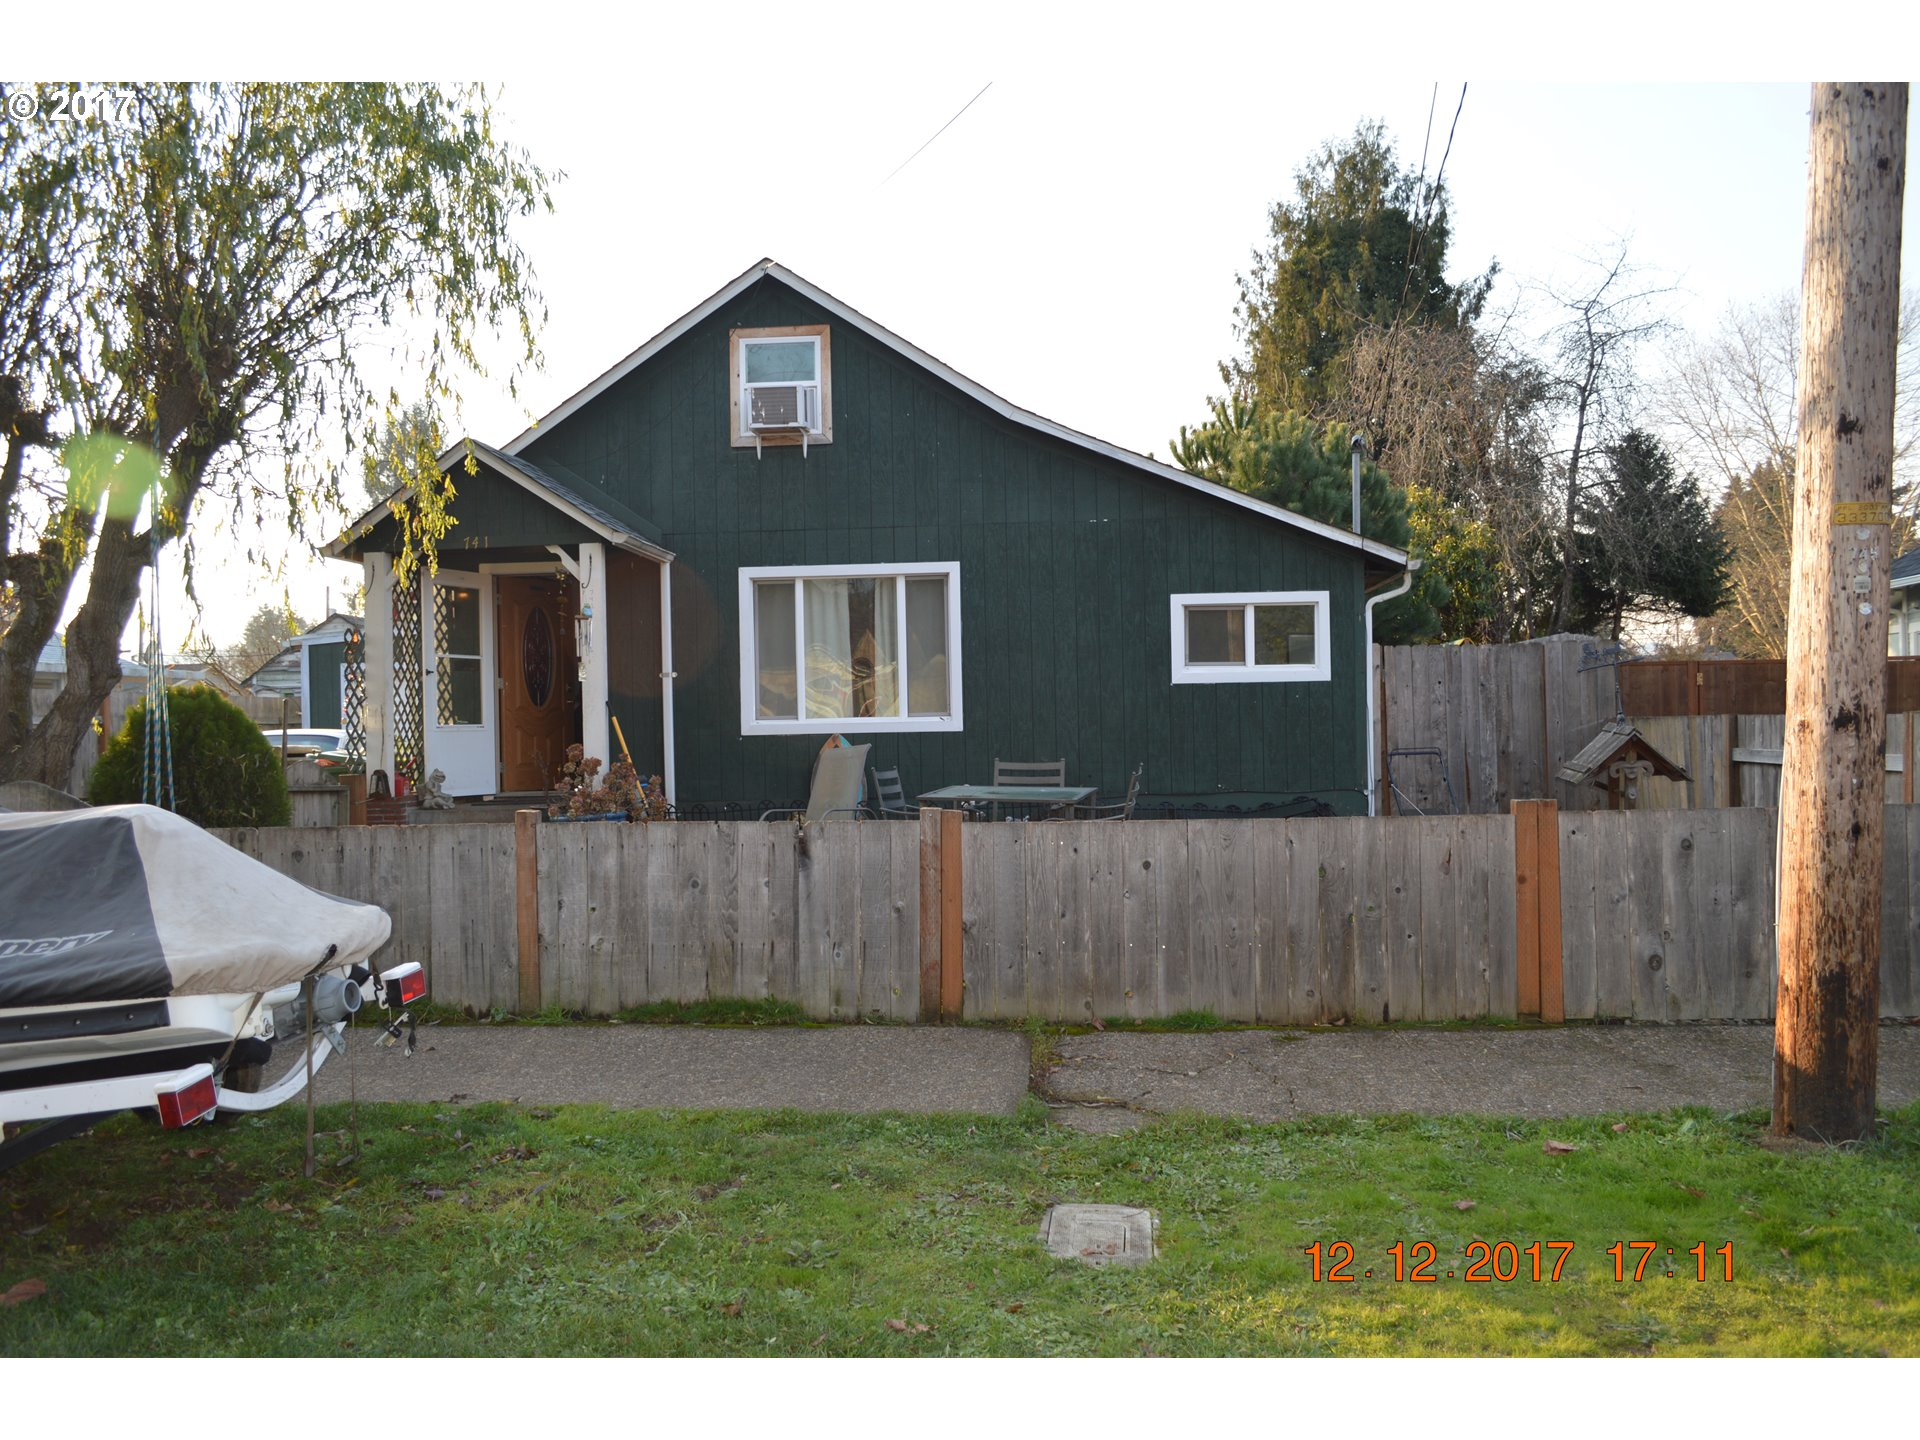 741 S 8TH ST Cottage Grove, OR 97424 17148988